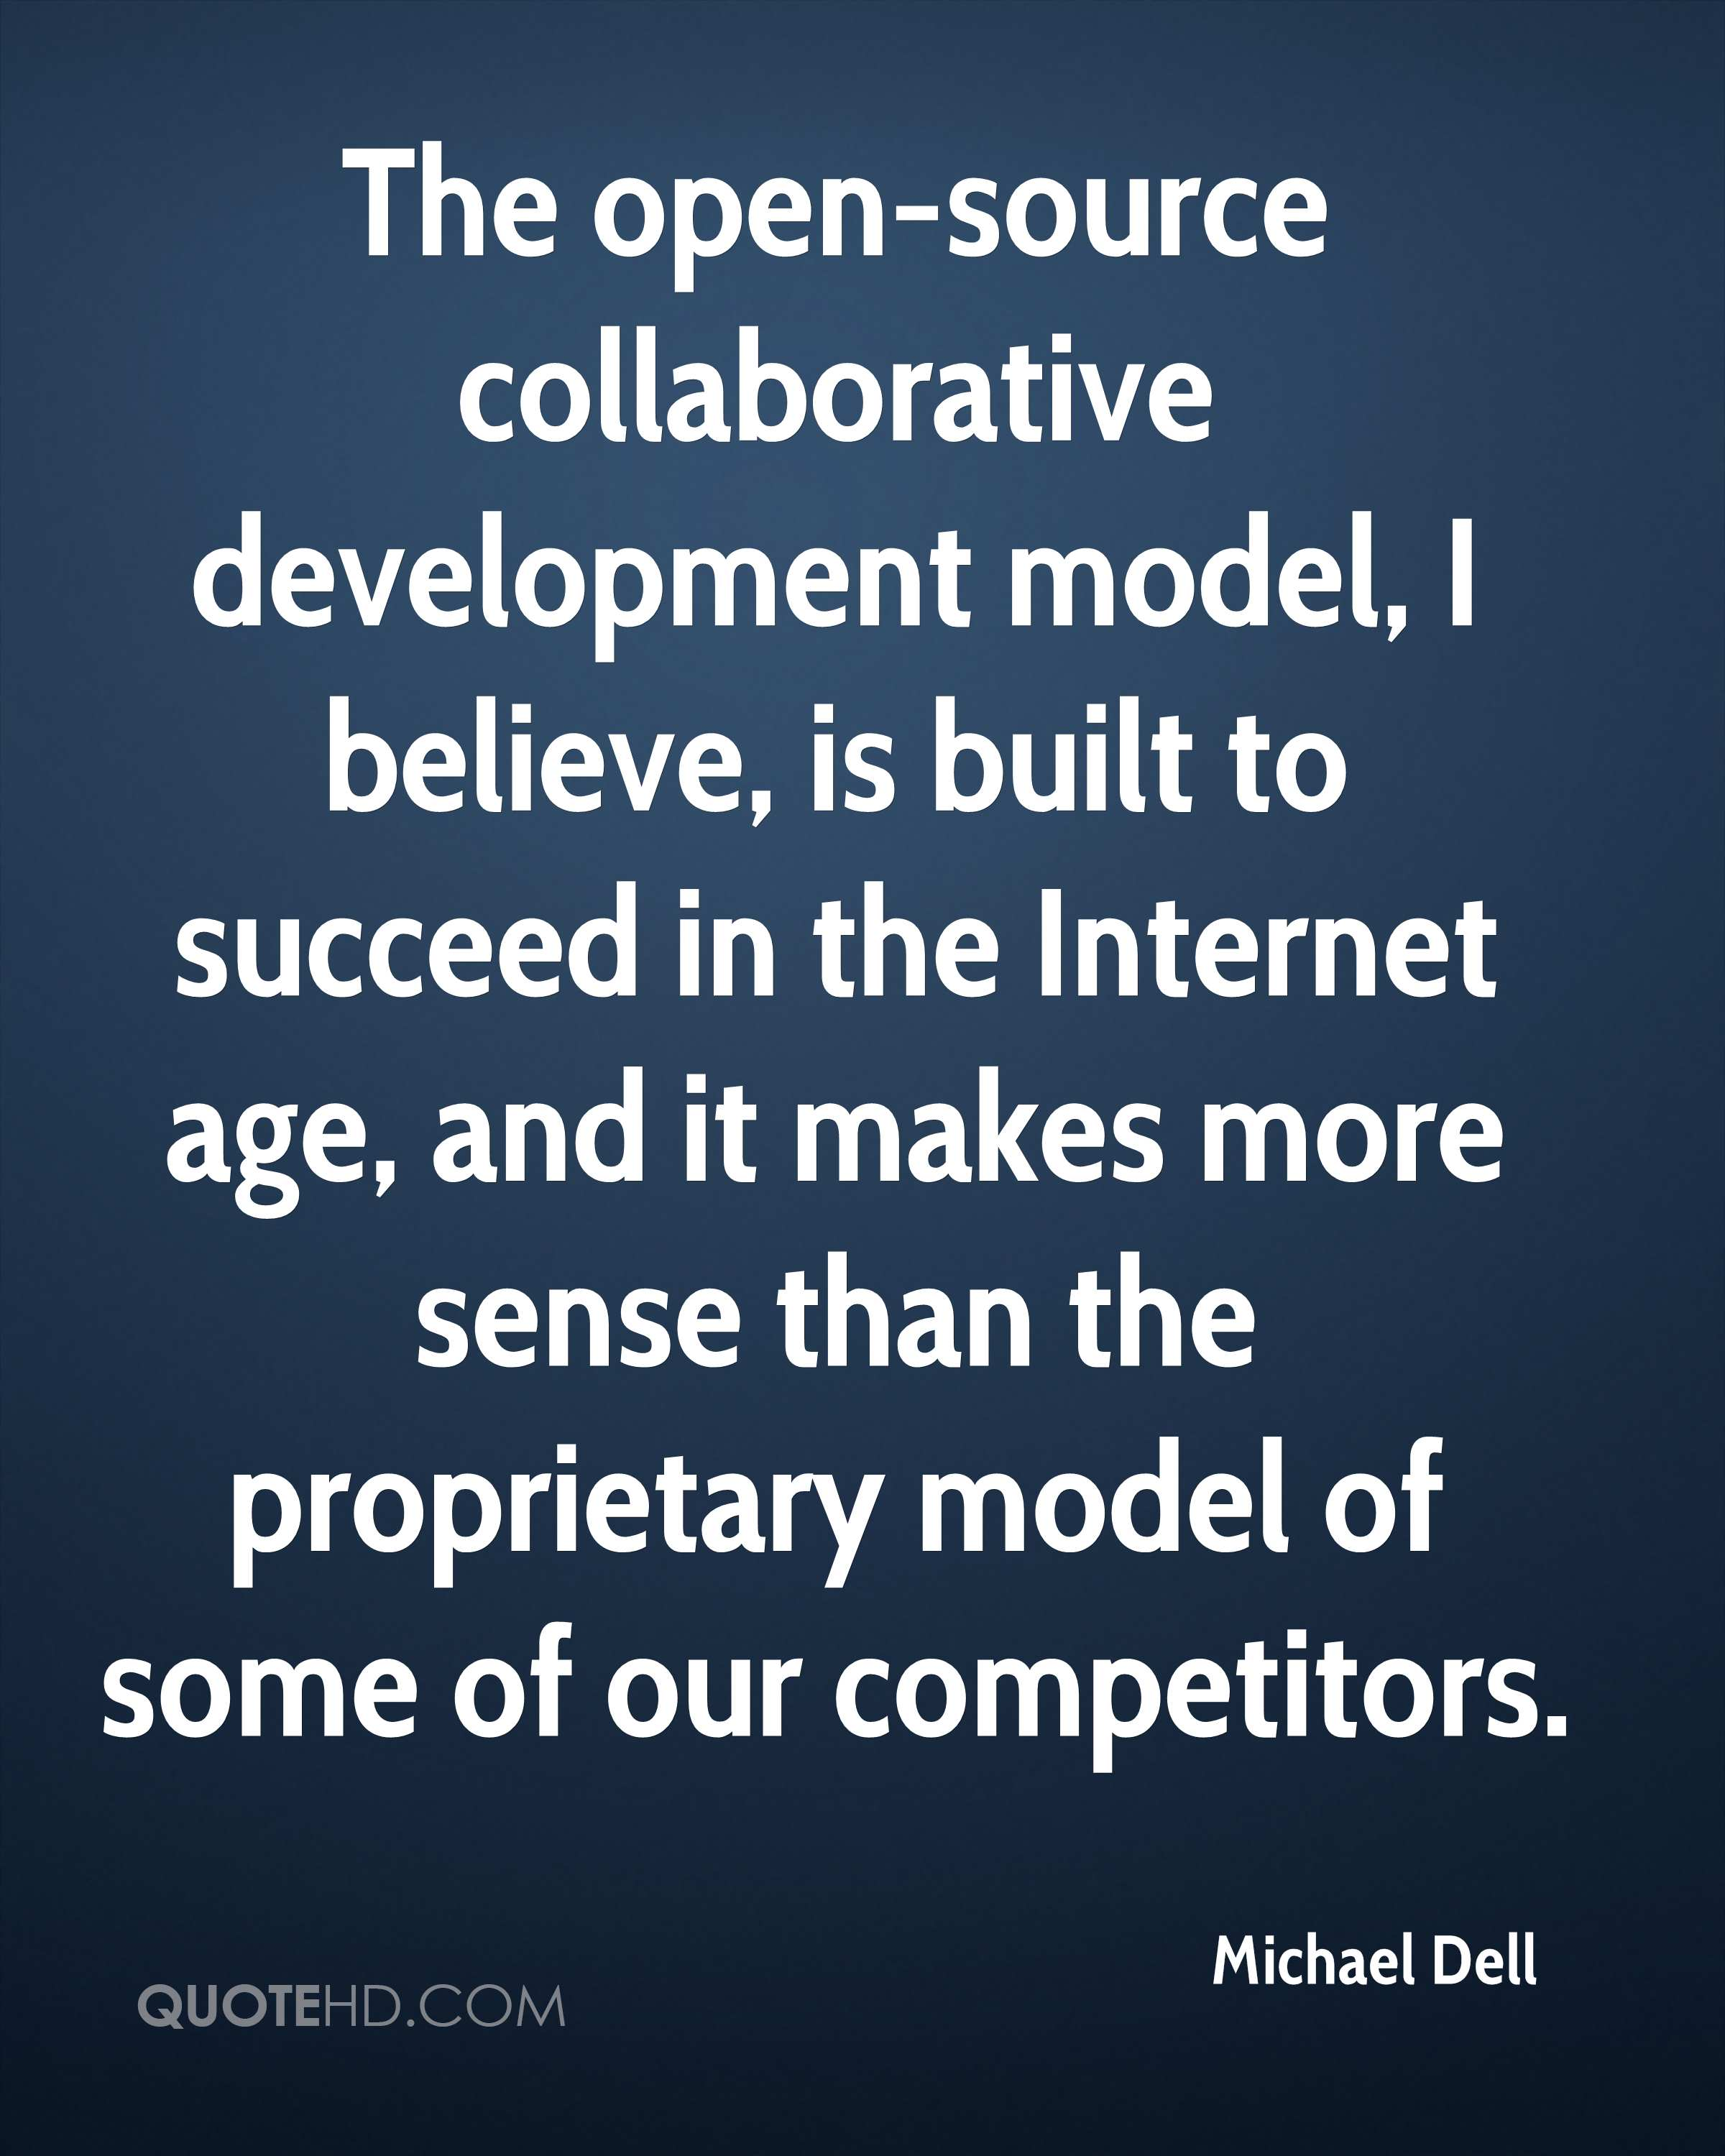 The open-source collaborative development model, I believe, is built to succeed in the Internet age, and it makes more sense than the proprietary model of some of our competitors.